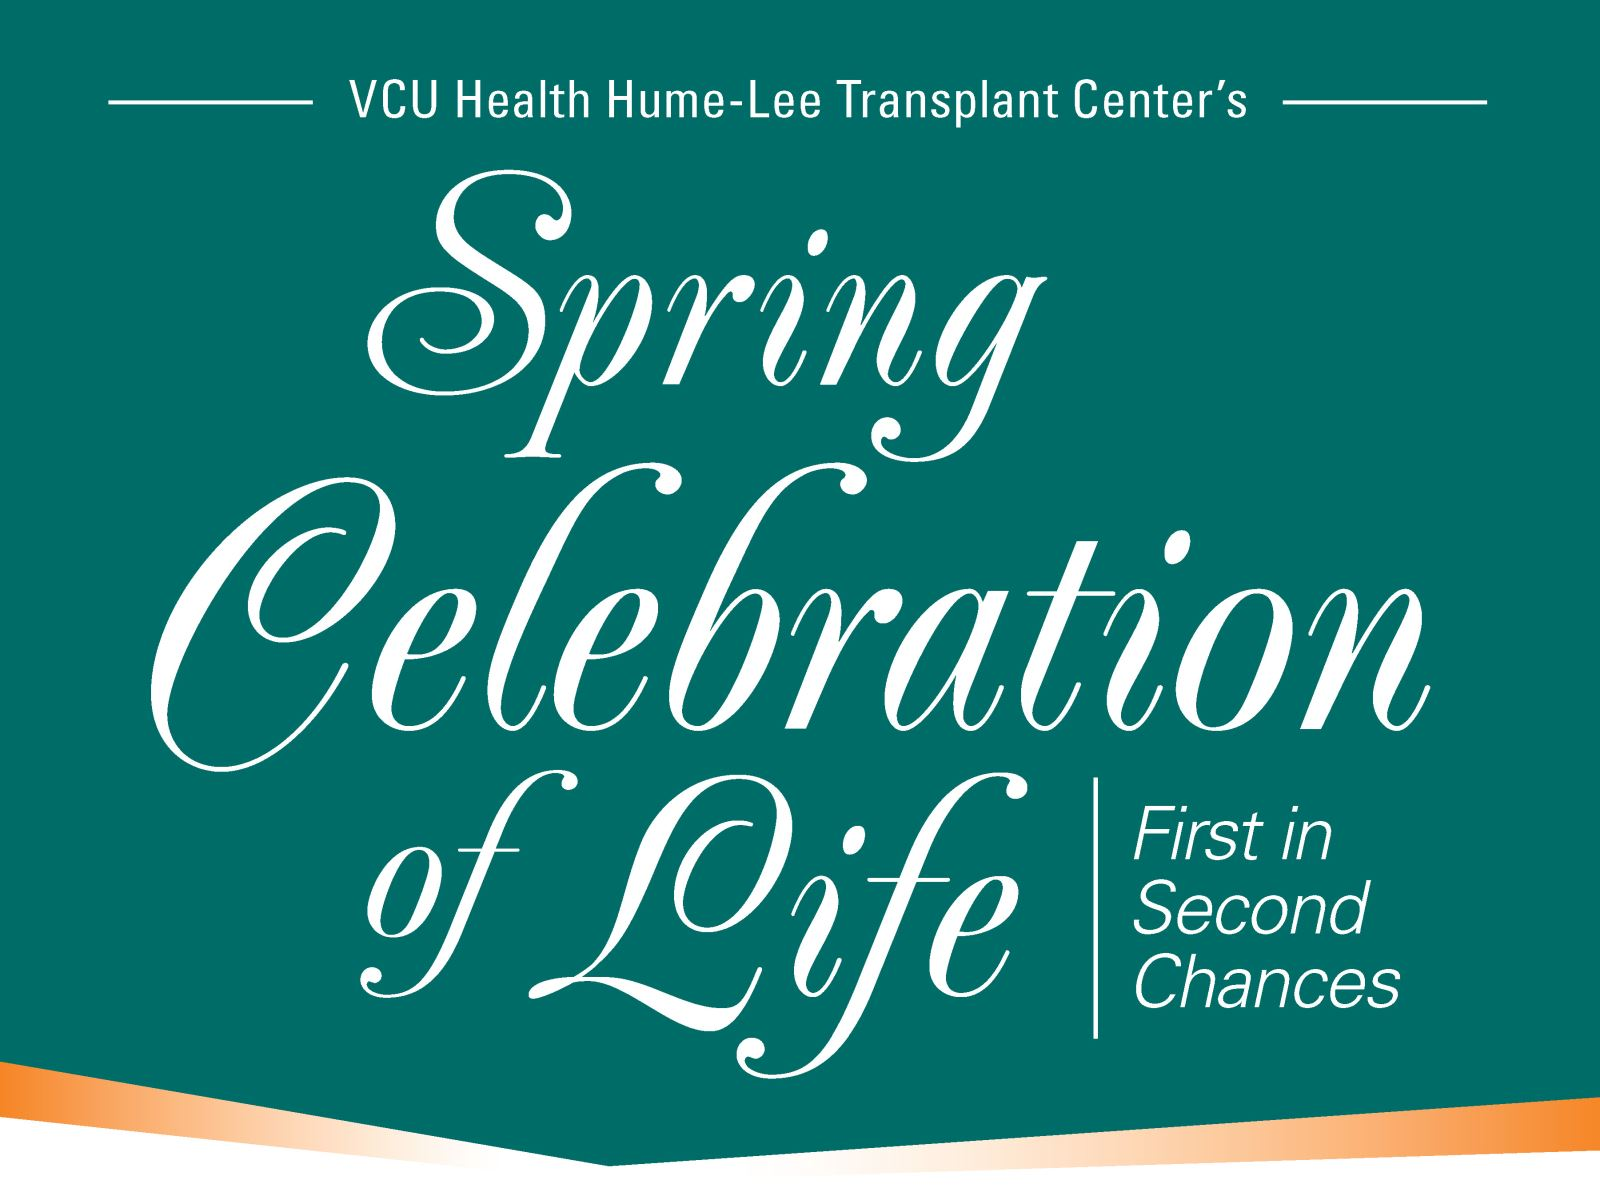 VCU Health Hume-Lee Transplant Center's Spring Celebration of Life, First in Second Chances